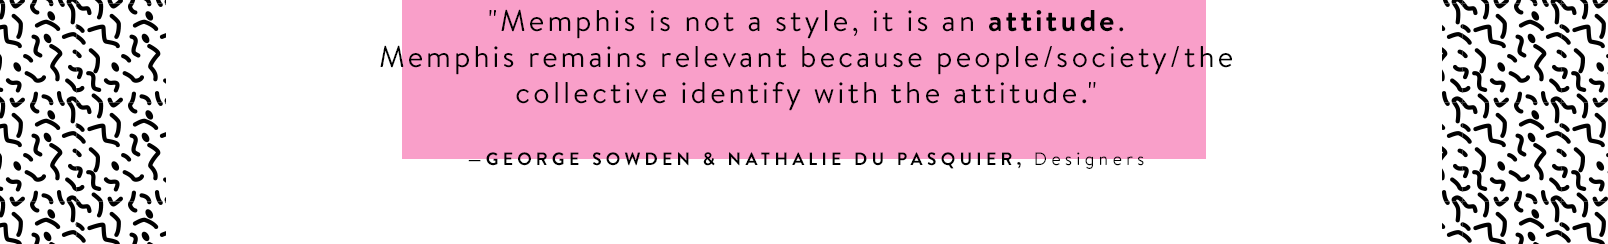 """""""Memphis is not a style, it is an attitude. Memphis remains relevant because people/society/the collective identify with the attitude."""" —GEORGE SOWDEN & NATHALIE DU PASQUIER, Designers"""